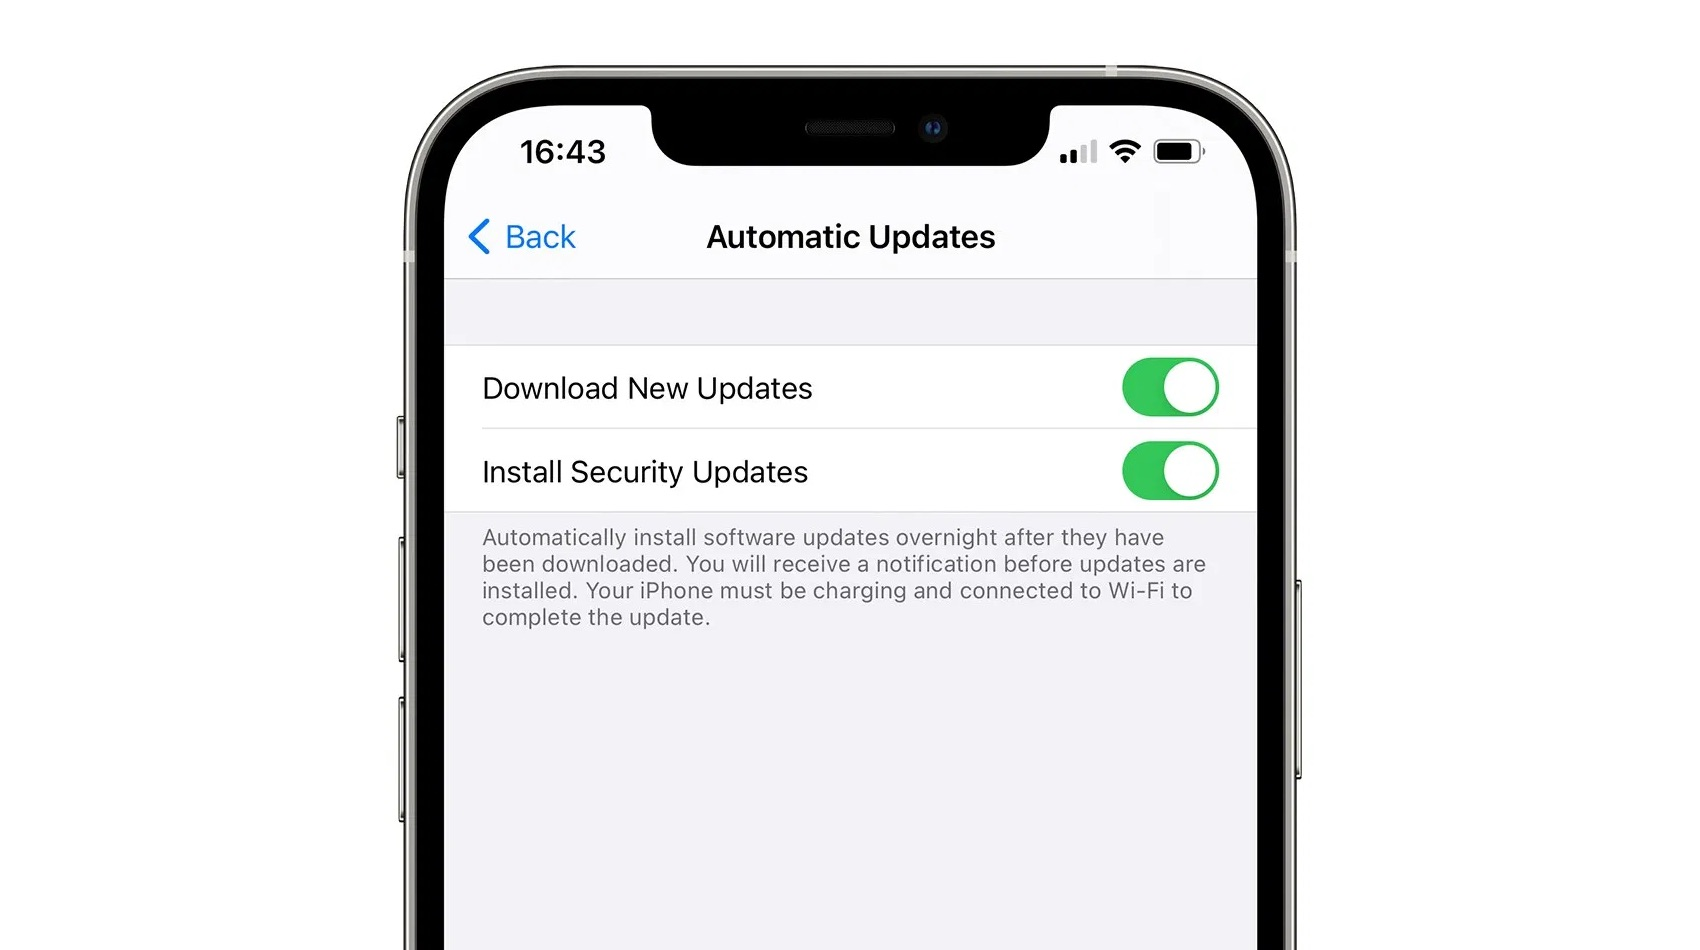 Apple Could Allow iOS Users To Install Security Fixes Without Updating Full iOS - iOS Hacker